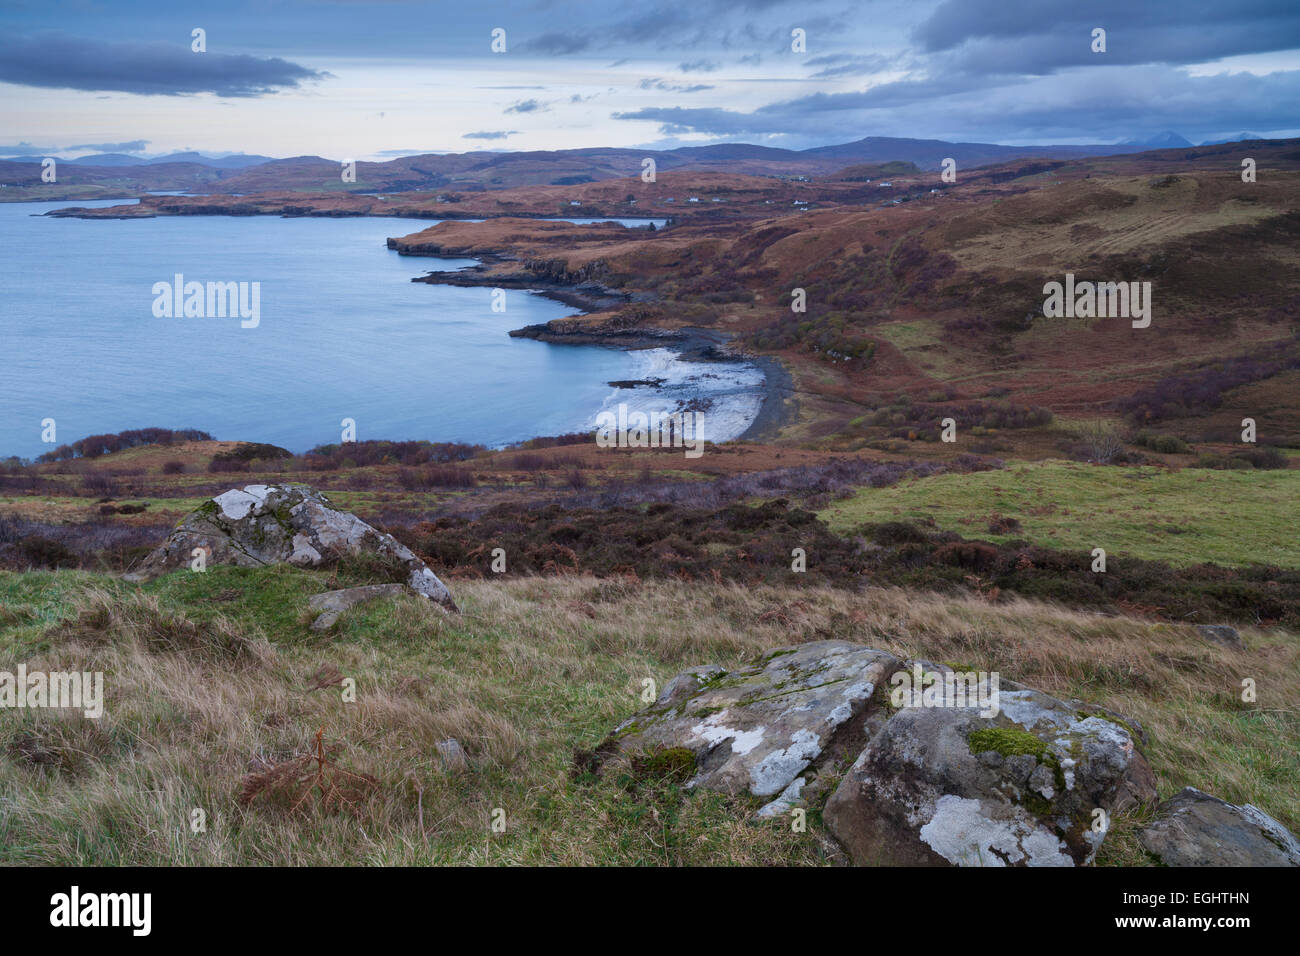 A view of Fiskavaig bay and Ardtreck point, Isle of Skye, Scotland Stock Photo